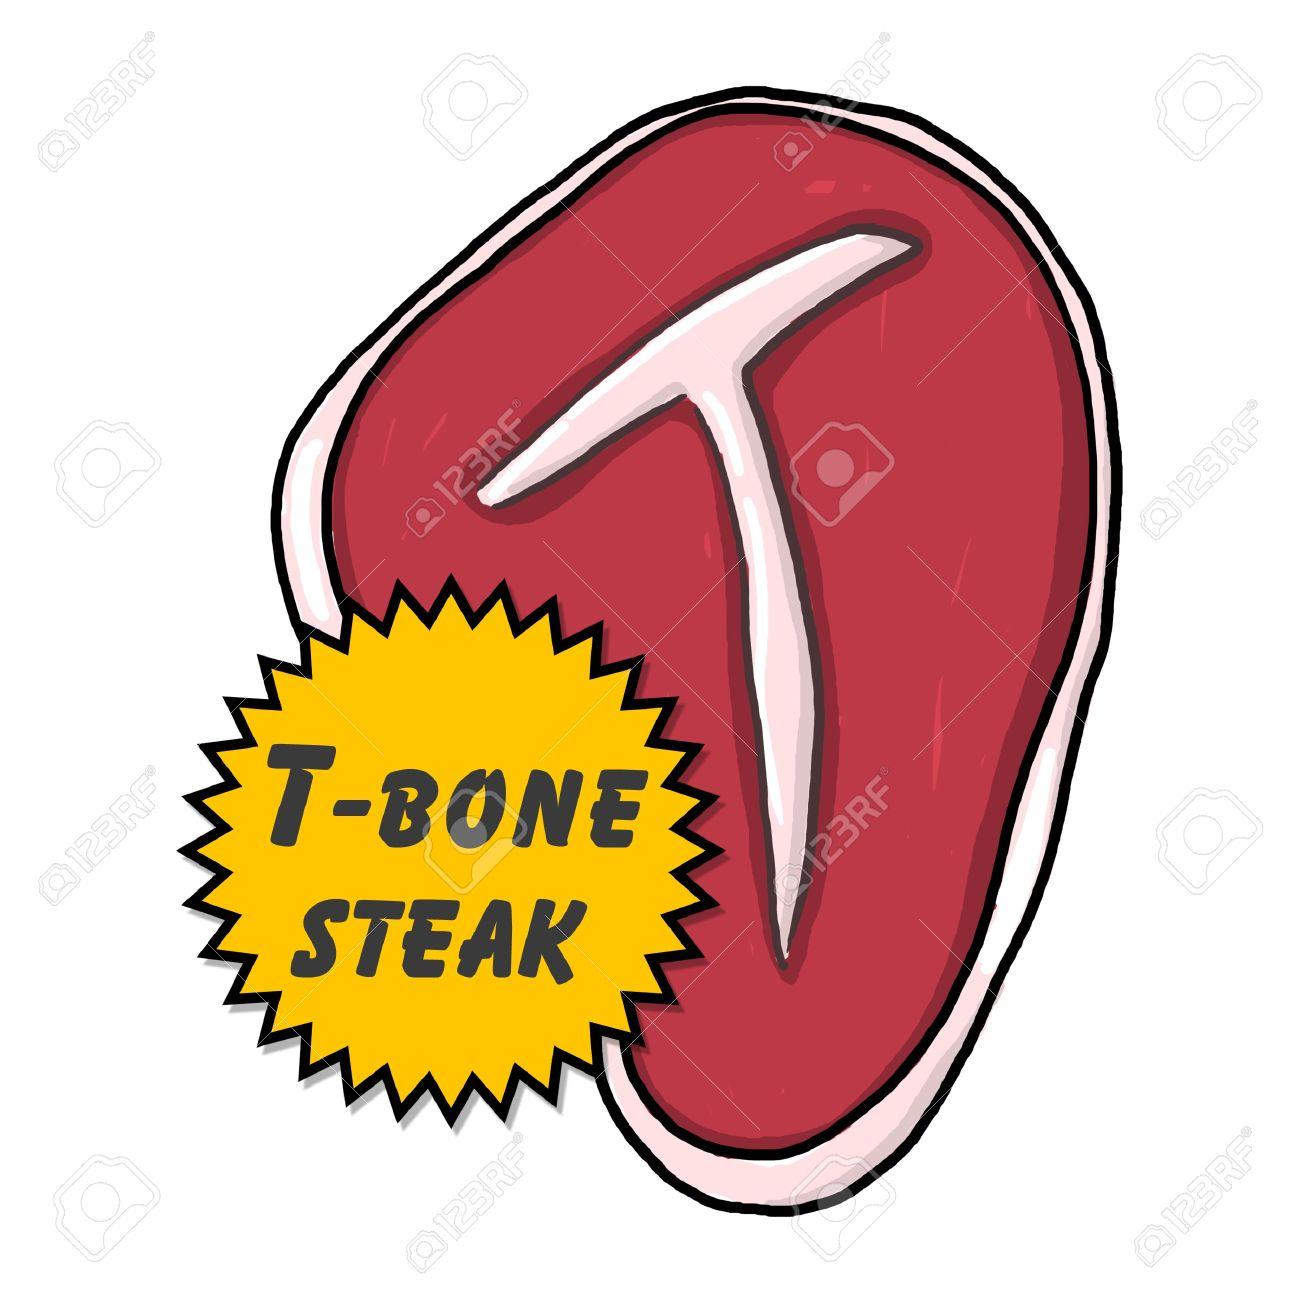 T-bone steak illustration; isolated Juicy  T-bone steak with a golden seal; steak cartoon style drawing Stock Illustration - 9924053